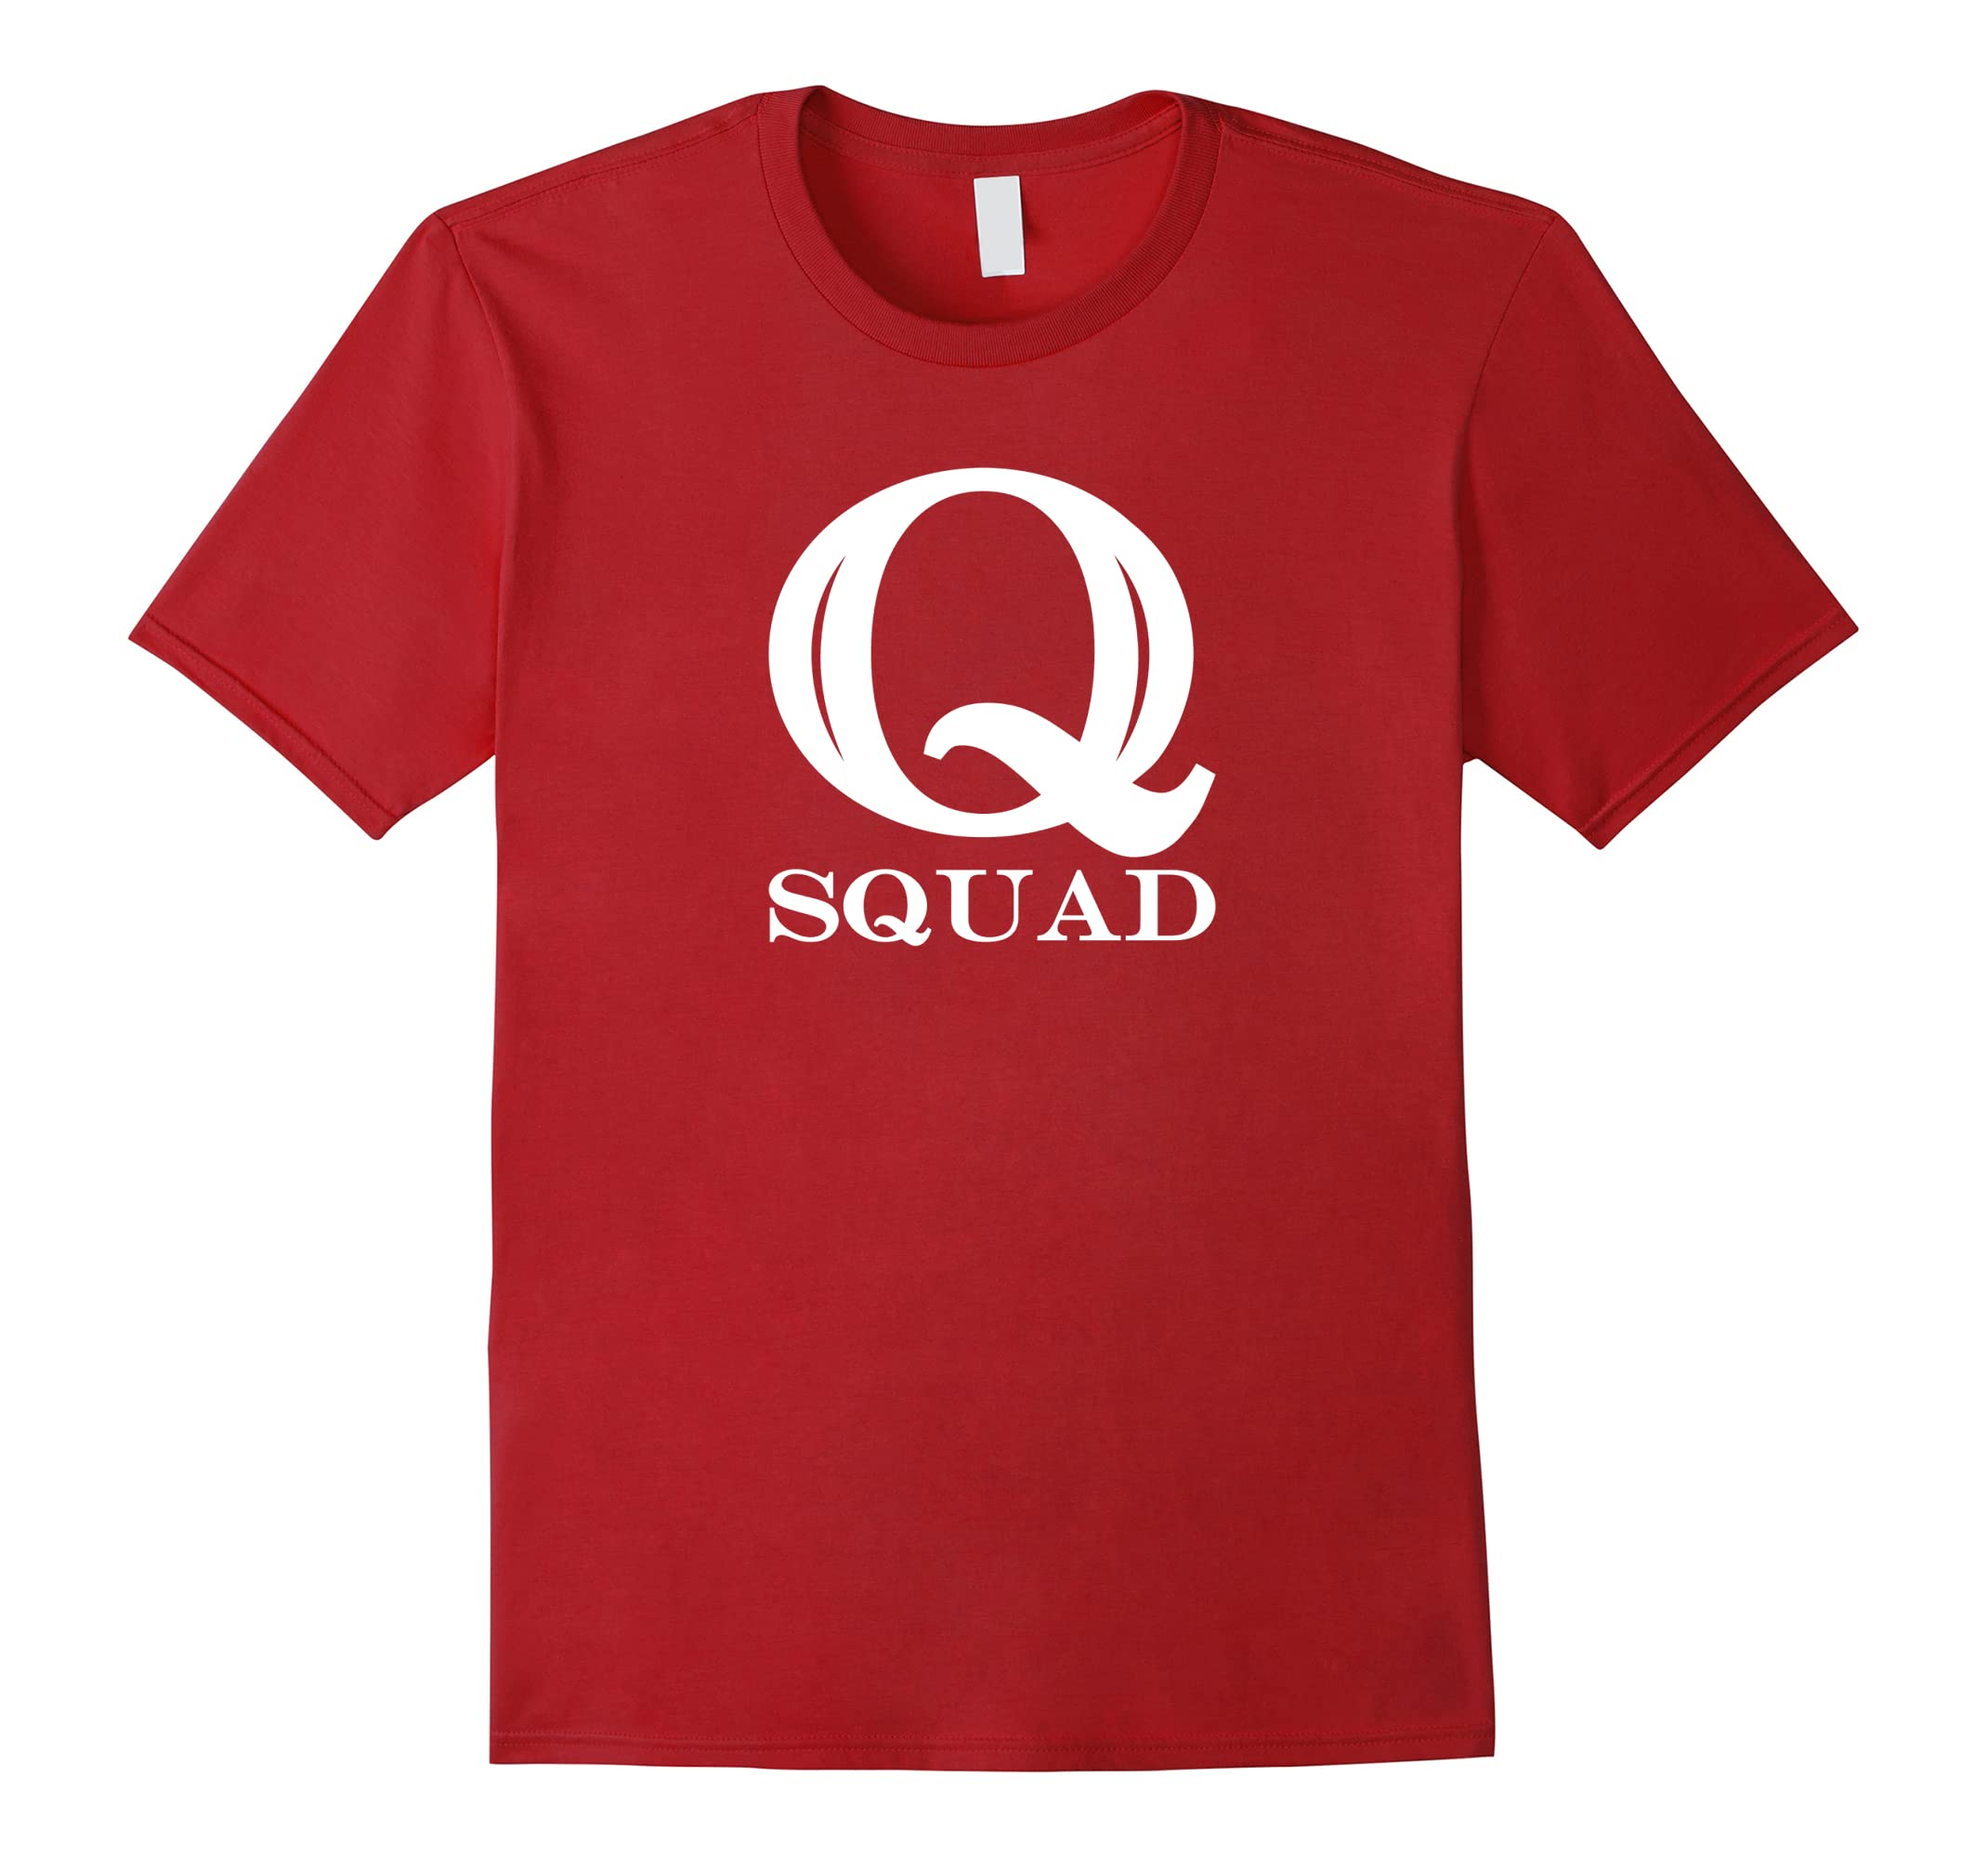 Q Squad T-Shirt For Q Anon Fans-RT